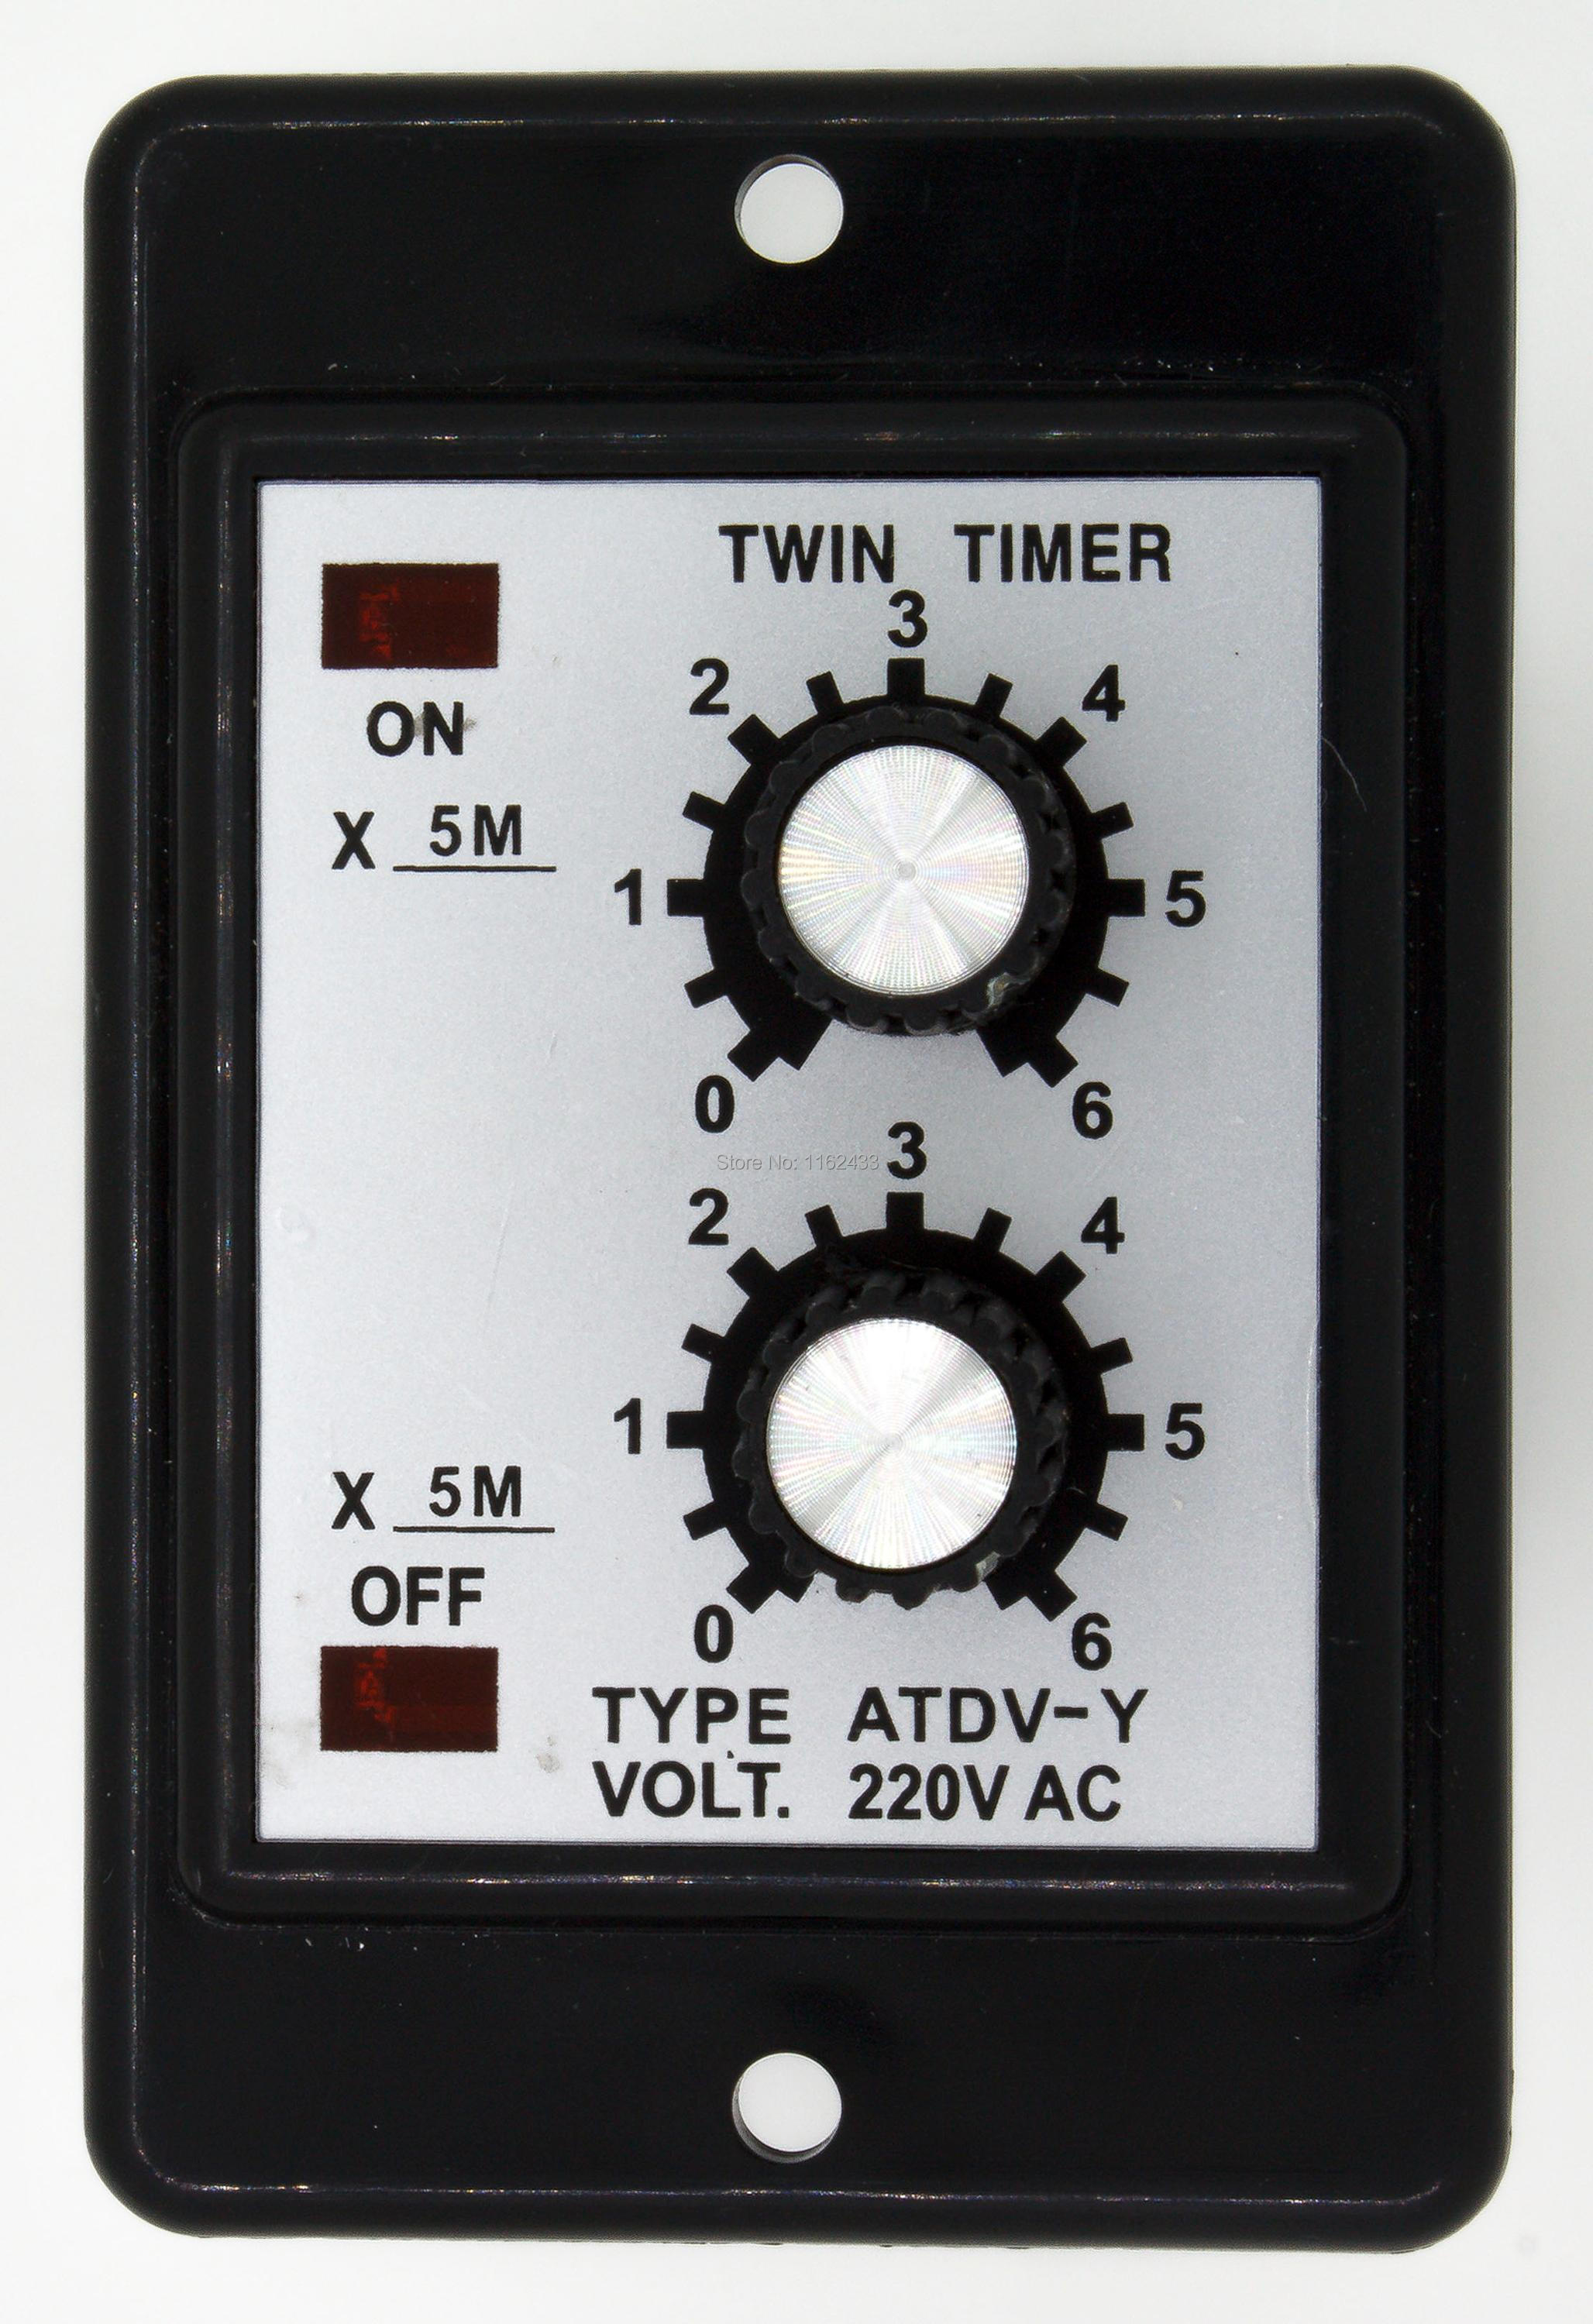 atdv y ac 220v repeat cycle spdt time relay atdv series 220vac twin pinrelaydiagram atdvy 30s 220v ac twin timer relay view twin timer source aexit asy 2d  [ 2056 x 3000 Pixel ]